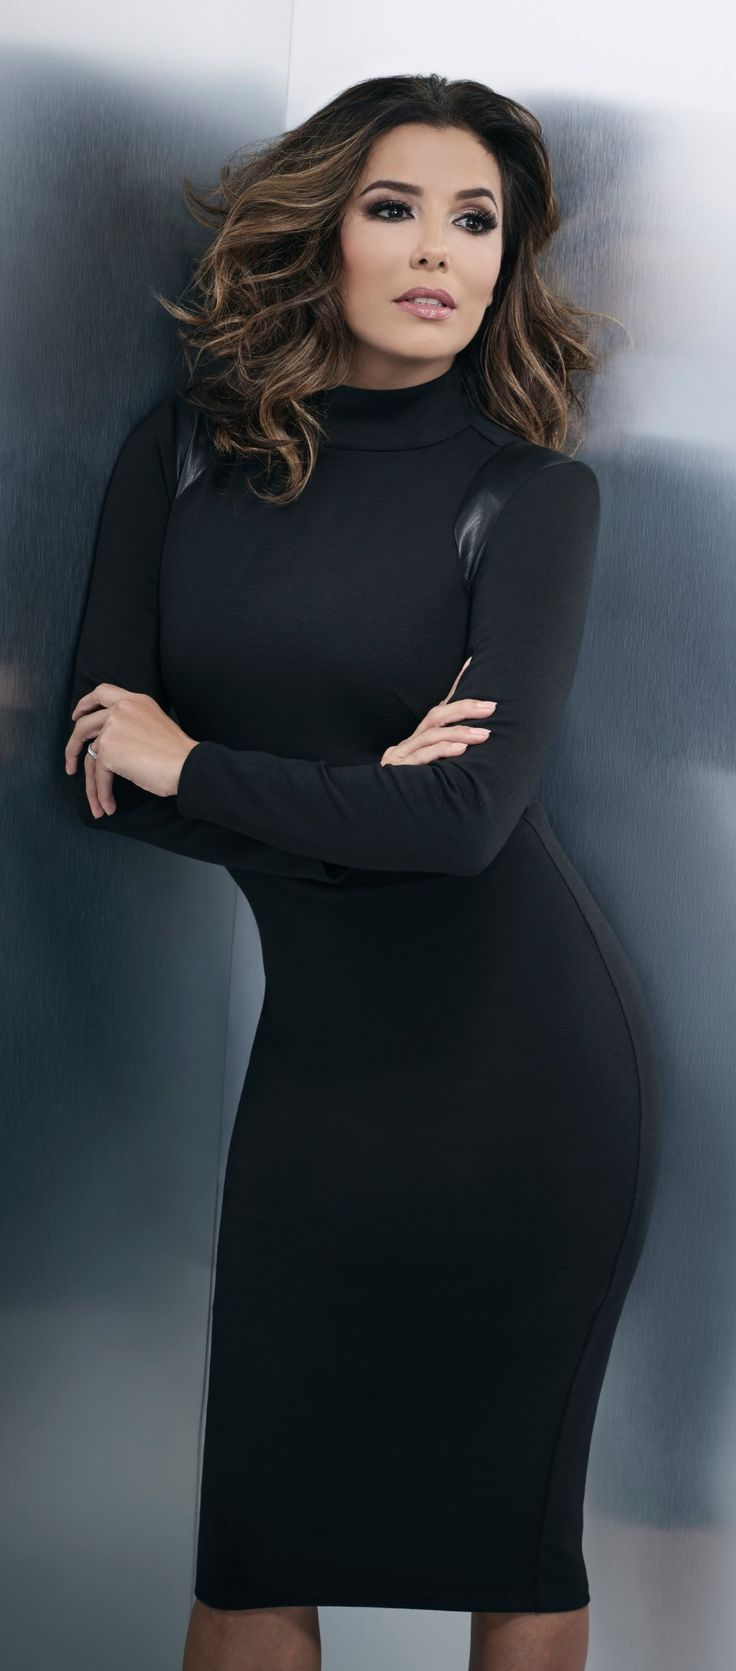 Exclusively from the Eva Longoria collection. Faux leather insets add on-trend appeal to a classic turtleneck dress. Power Ponte is an impeccable double knit fabric with amazing stretch. Think flawless fit from conference room to cocktails.